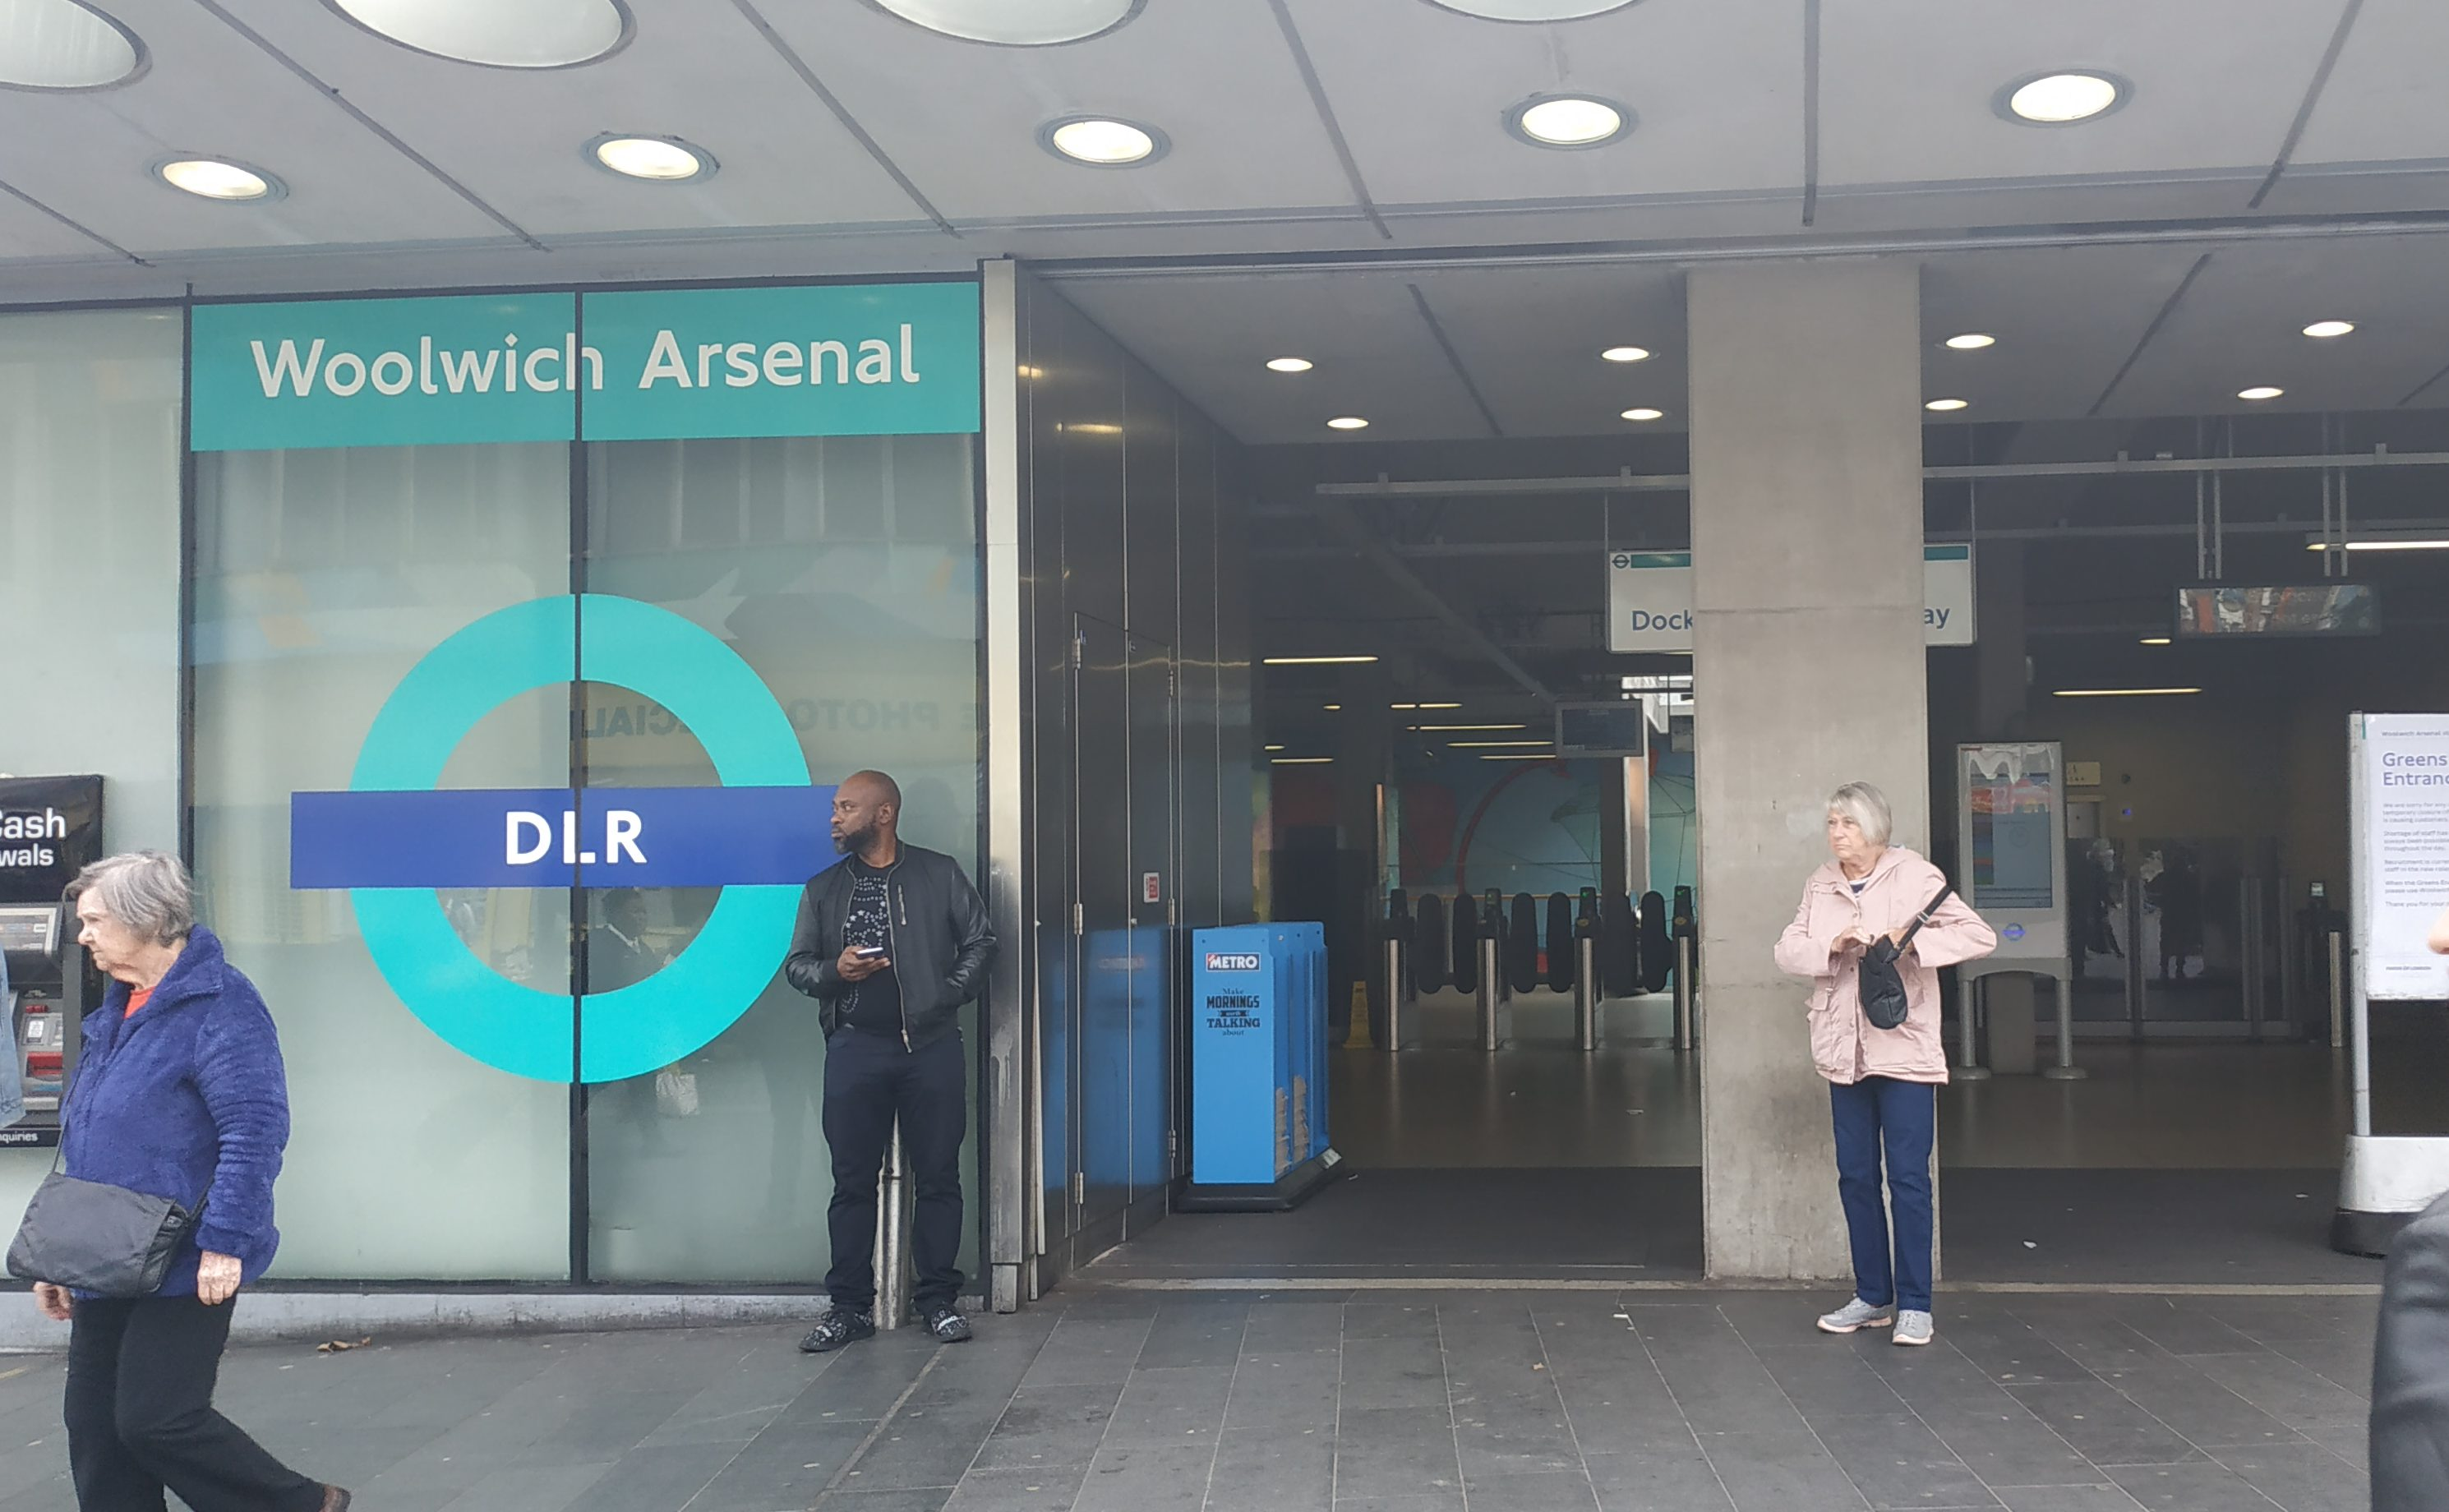 Woolwich Arsenal station evacuated as smoke appears from DLR train